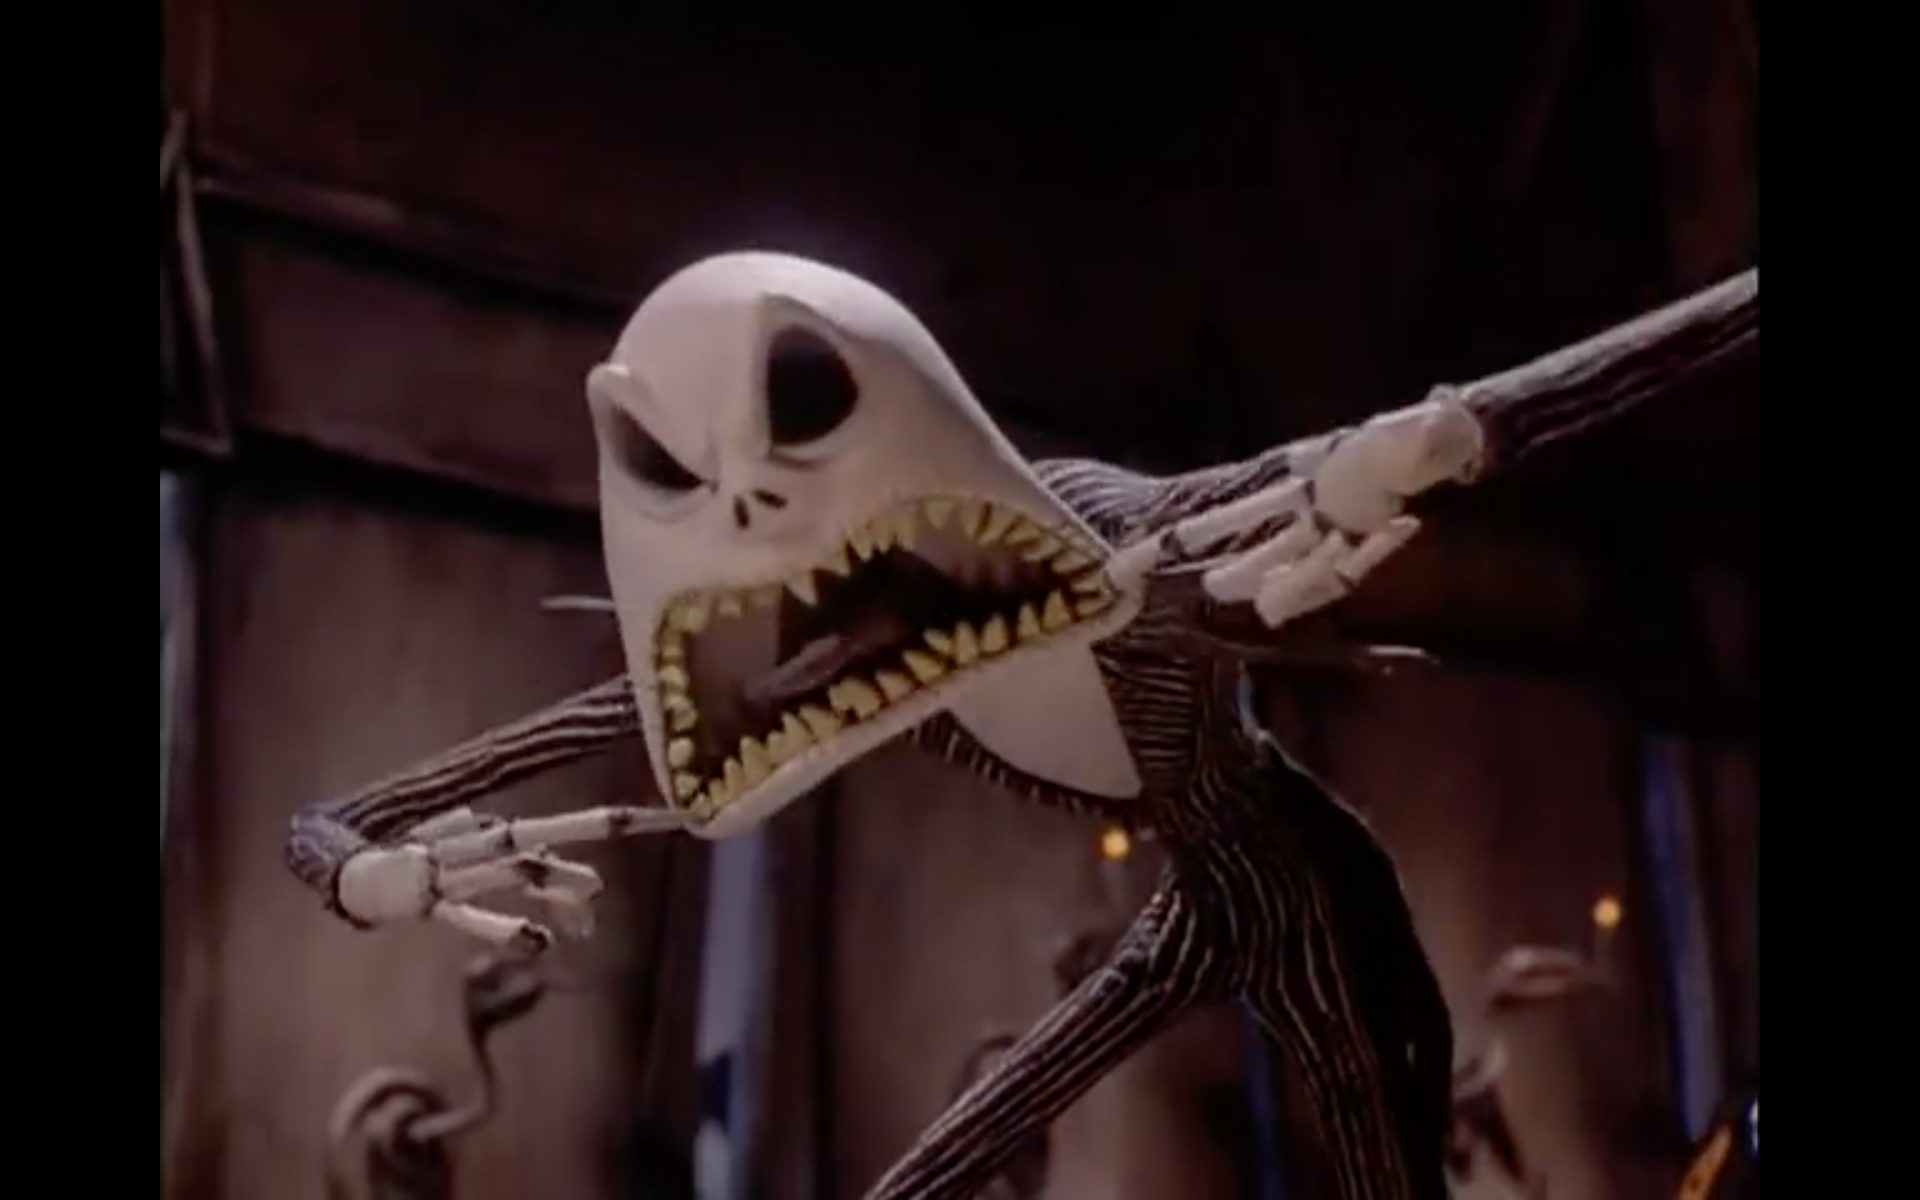 Of The Nightmare Before Christmas